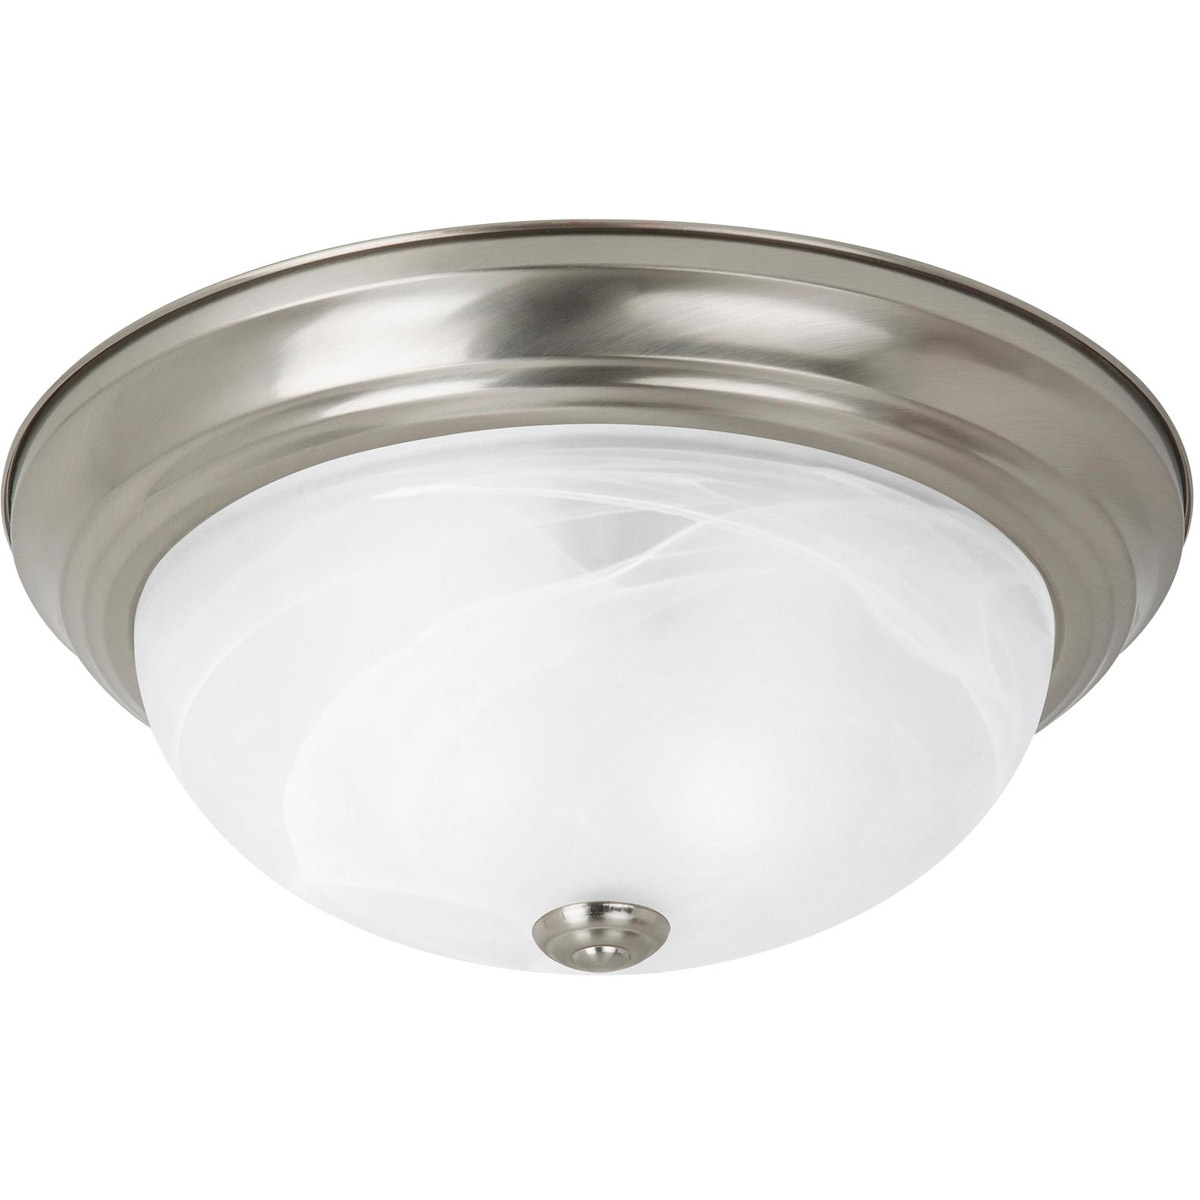 Sea Gull Lighting Windgate 1 Light Flush Mount in Brushed Nickel 75940-962 photo